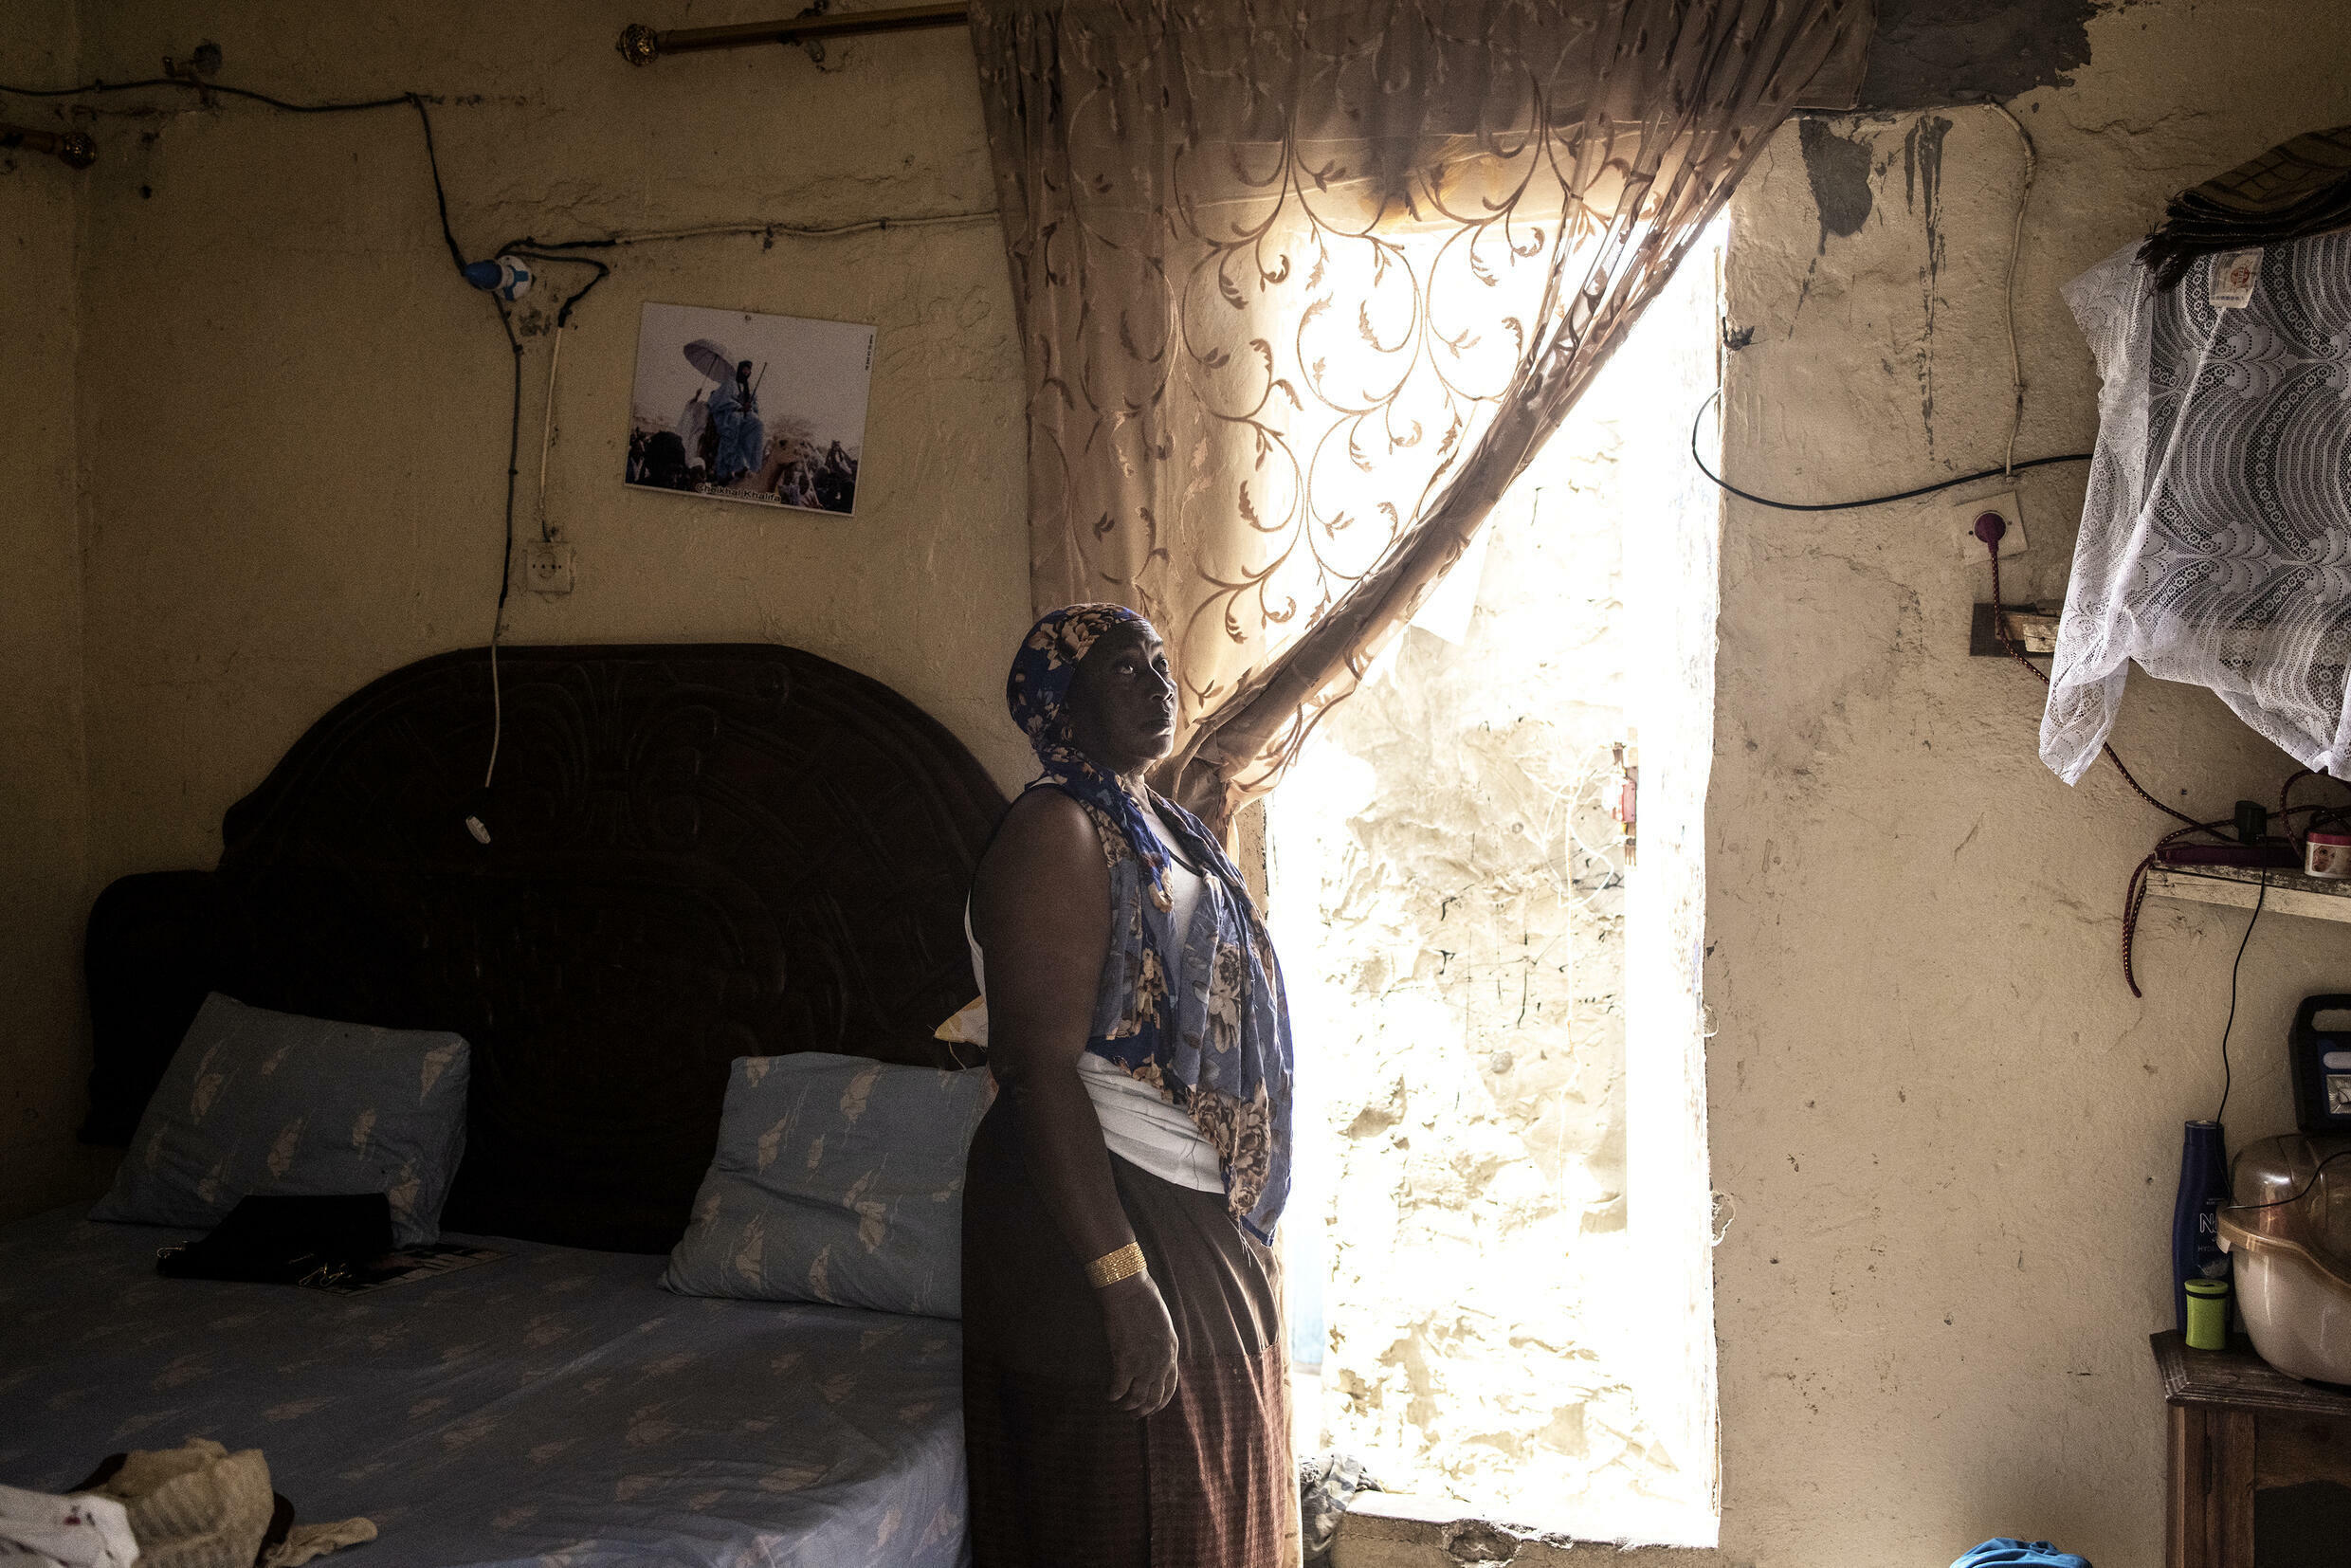 Mareme Gueye, 43, says six of the seven rooms in her house are missing, washed away by the ocean